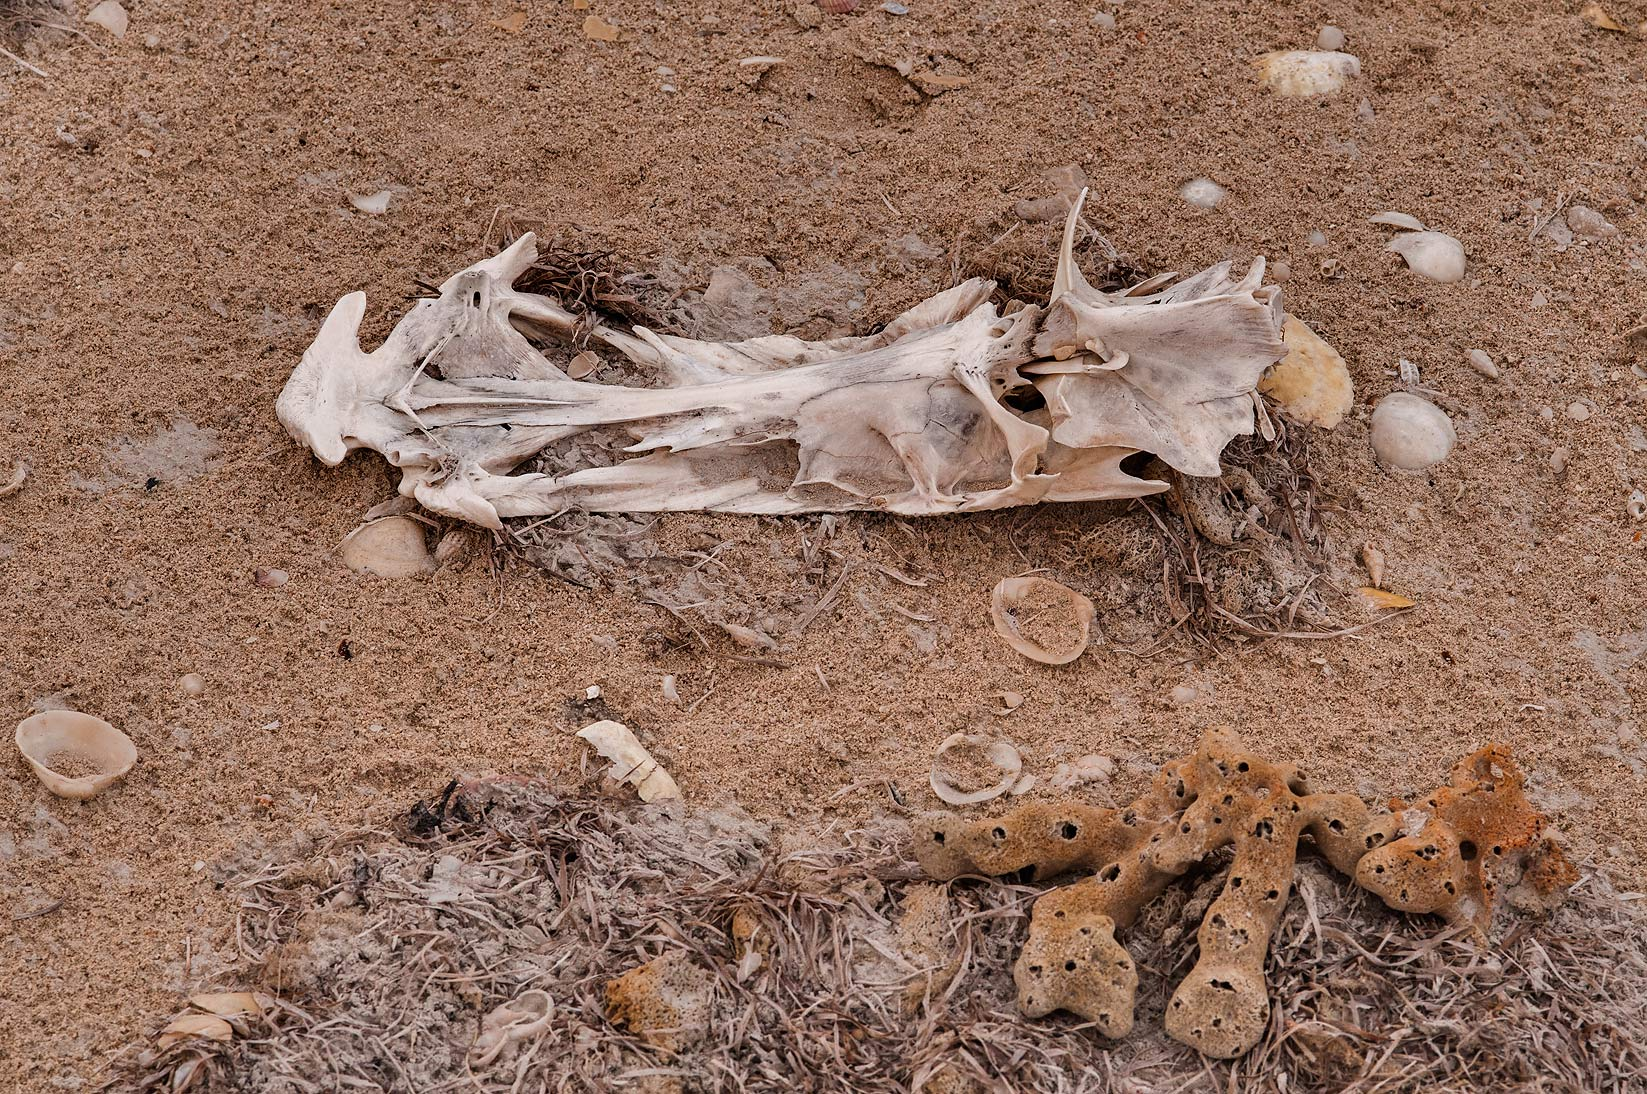 Bird's bones and sea sponges on a beach in Safliya Island near Doha. Qatar